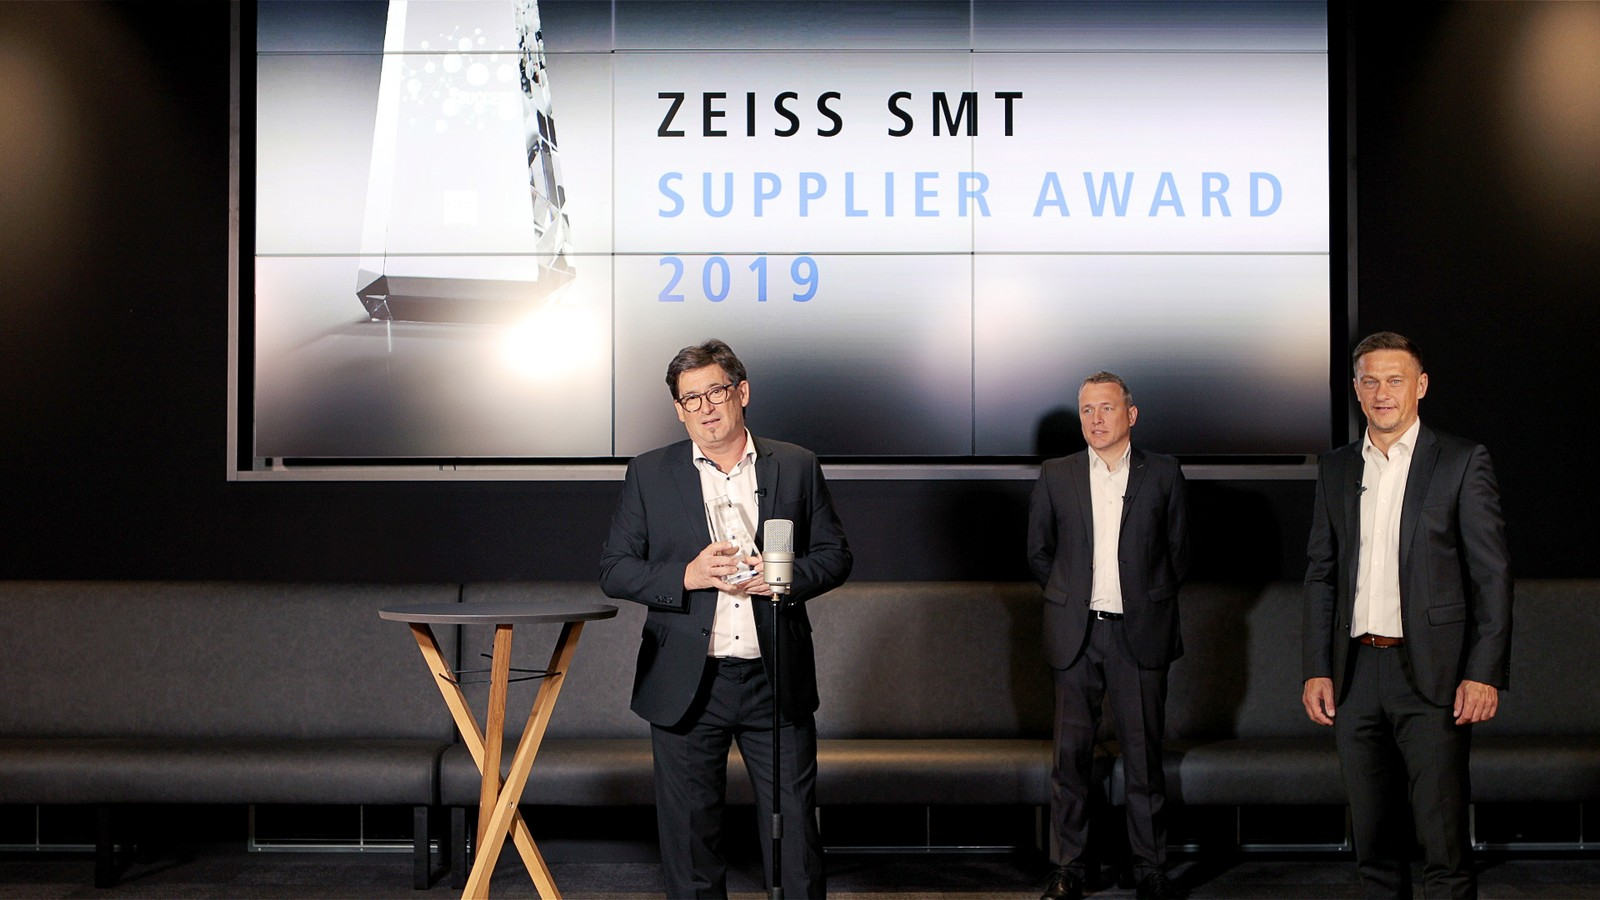 Bernd Krebs, Christoph Hauck und Karlheinz Nüßlein (v.l.n.r.) bei der virtuellen Übergabe des Supplier Awards der Zeiss Halbleiter Sparte Semiconductor Manufacturing Technology (SMT).